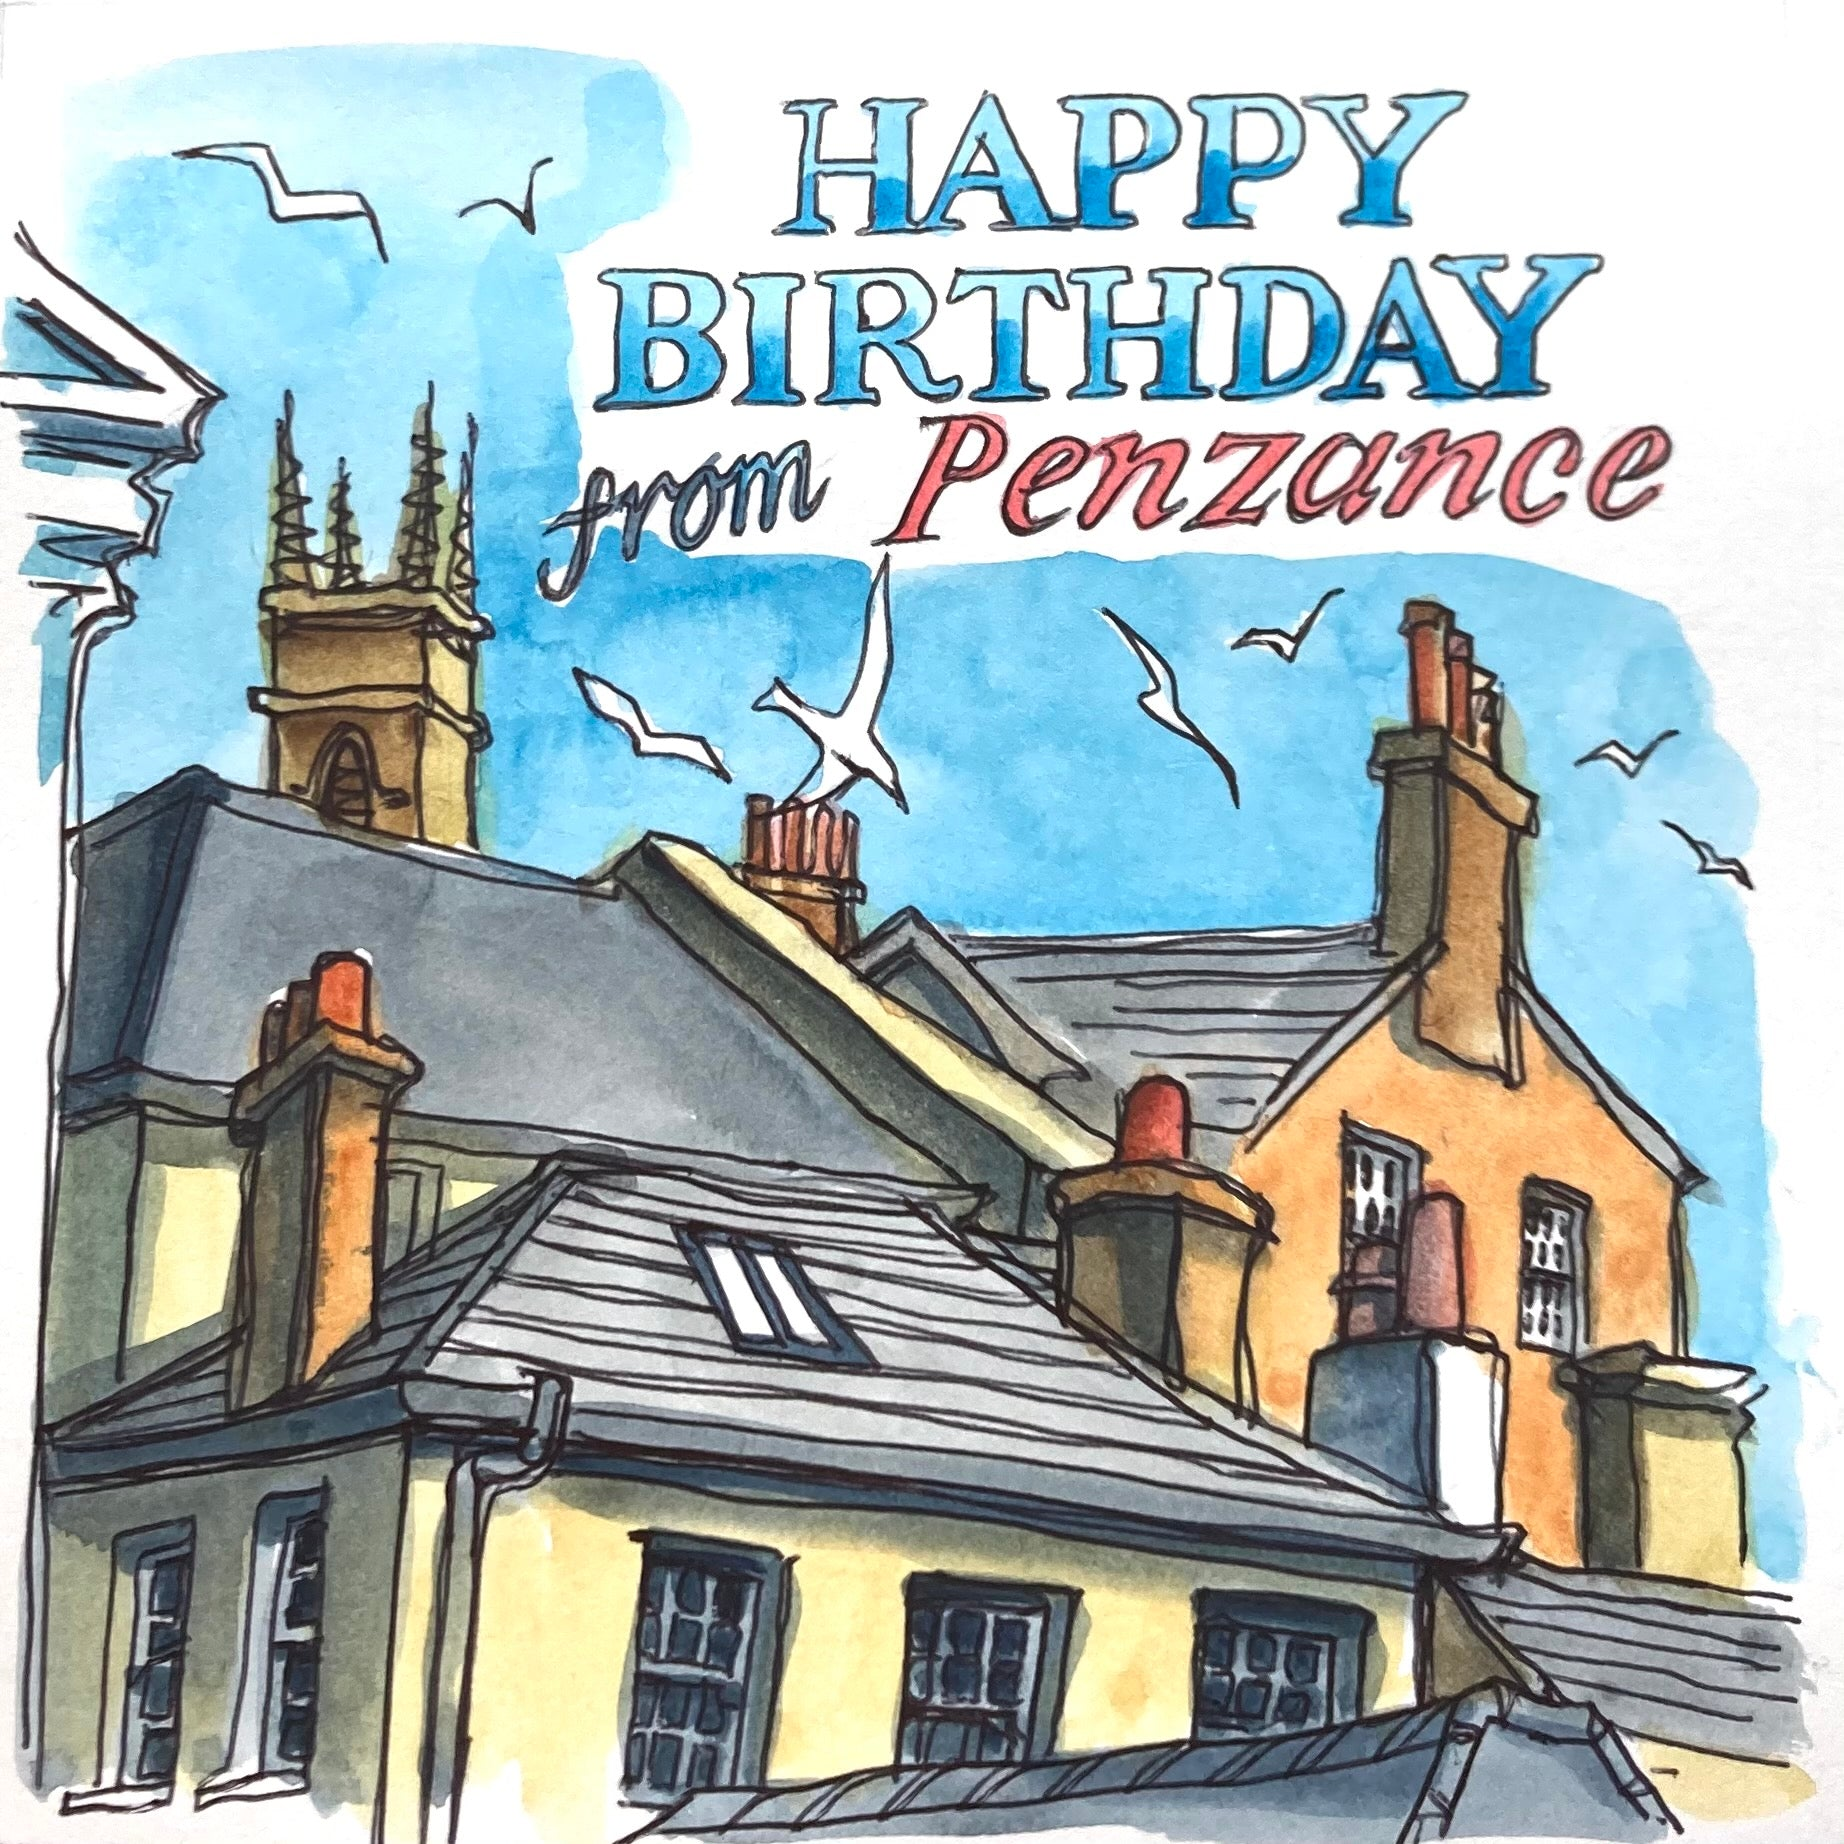 Penzance Rooftops Birthday Card by Sarah Bell